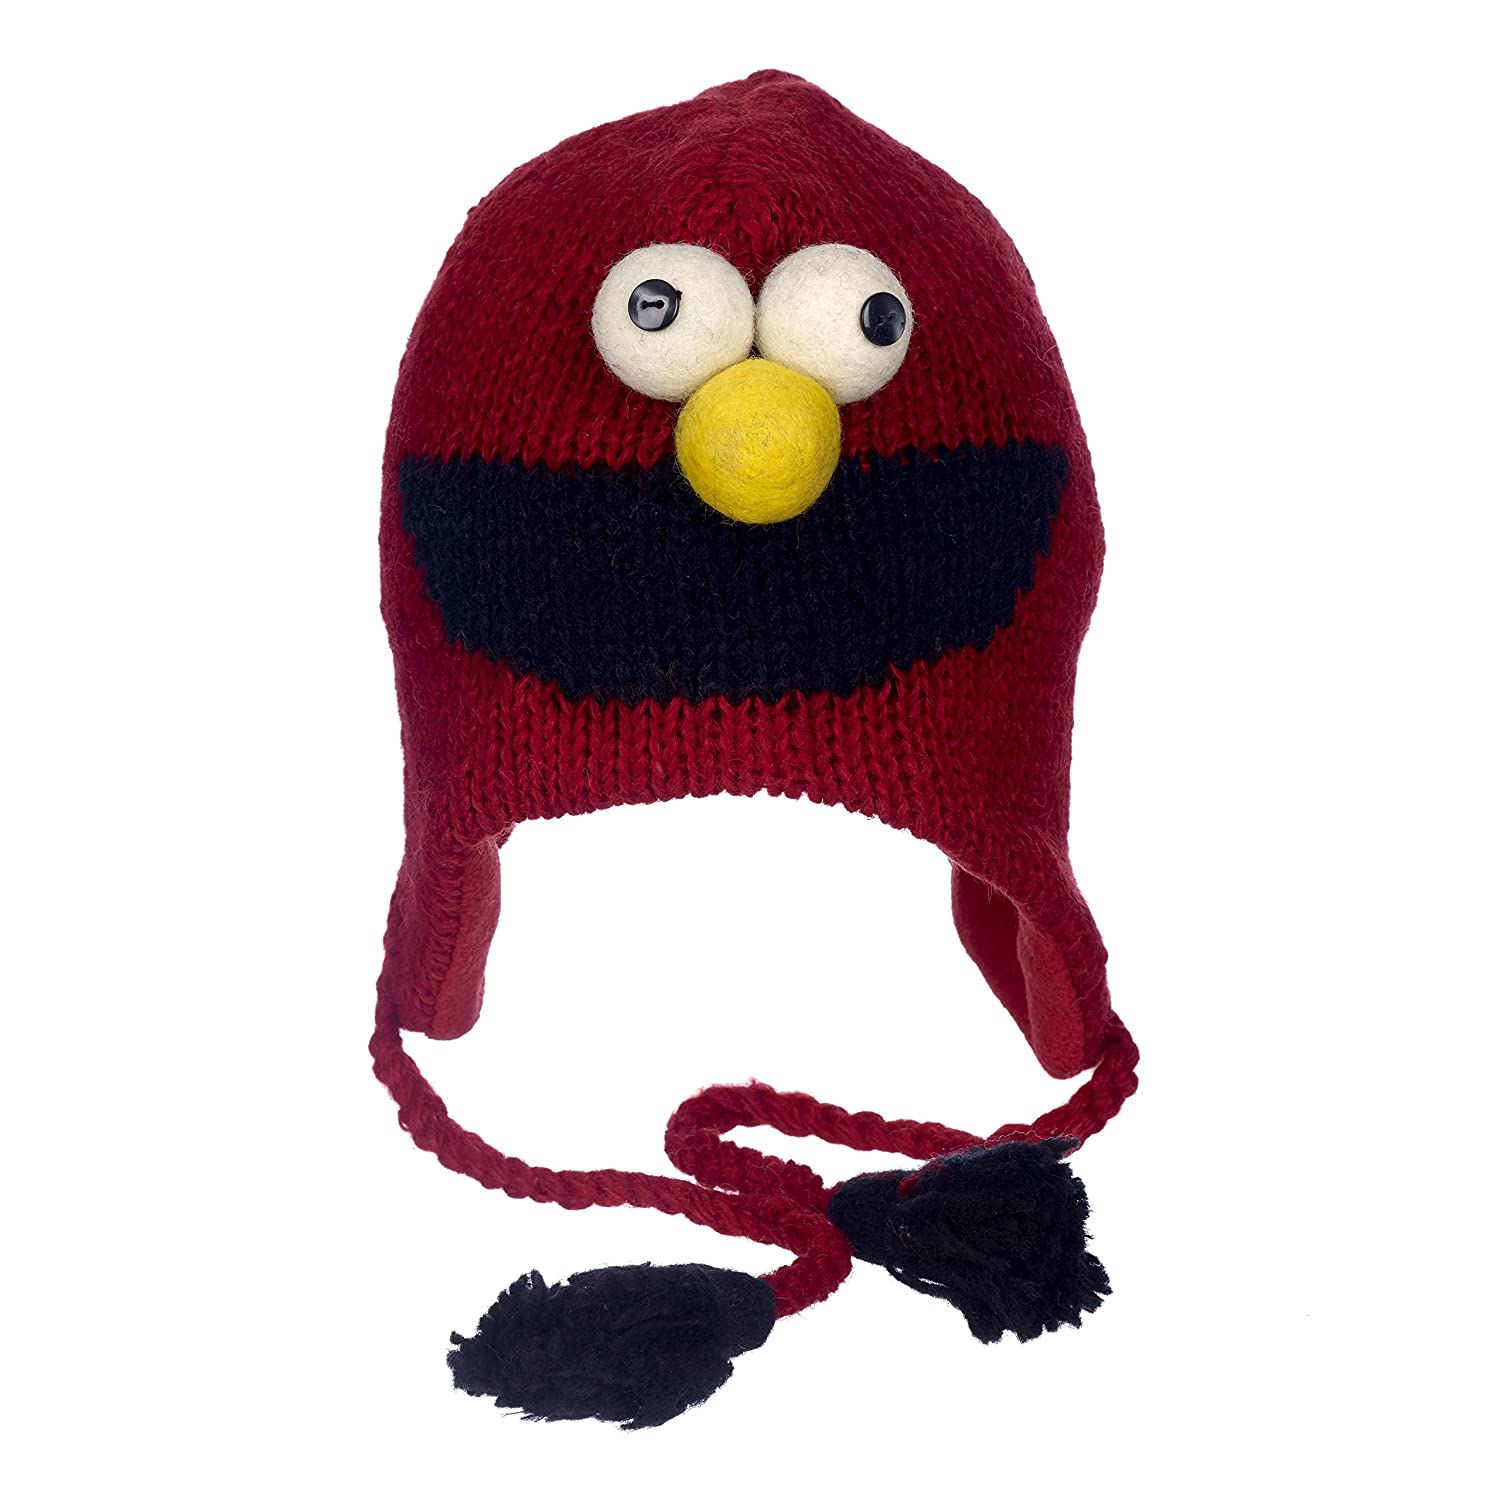 Paper High Big Boys' Fun Elmo Sesame Street Woollen Hat With Fleece Lining